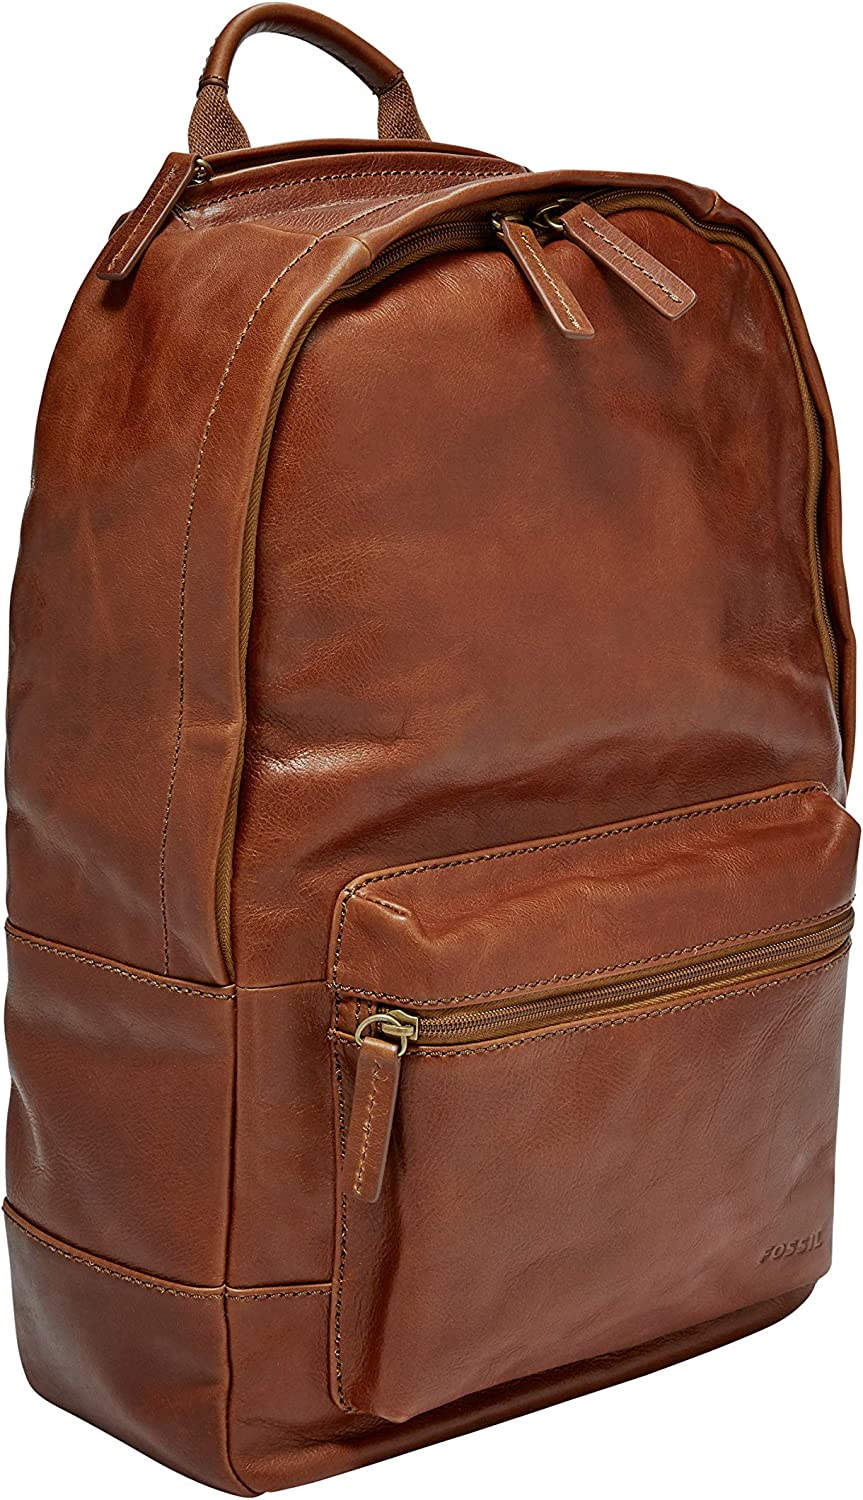 Fossil Leather Backpack with 13